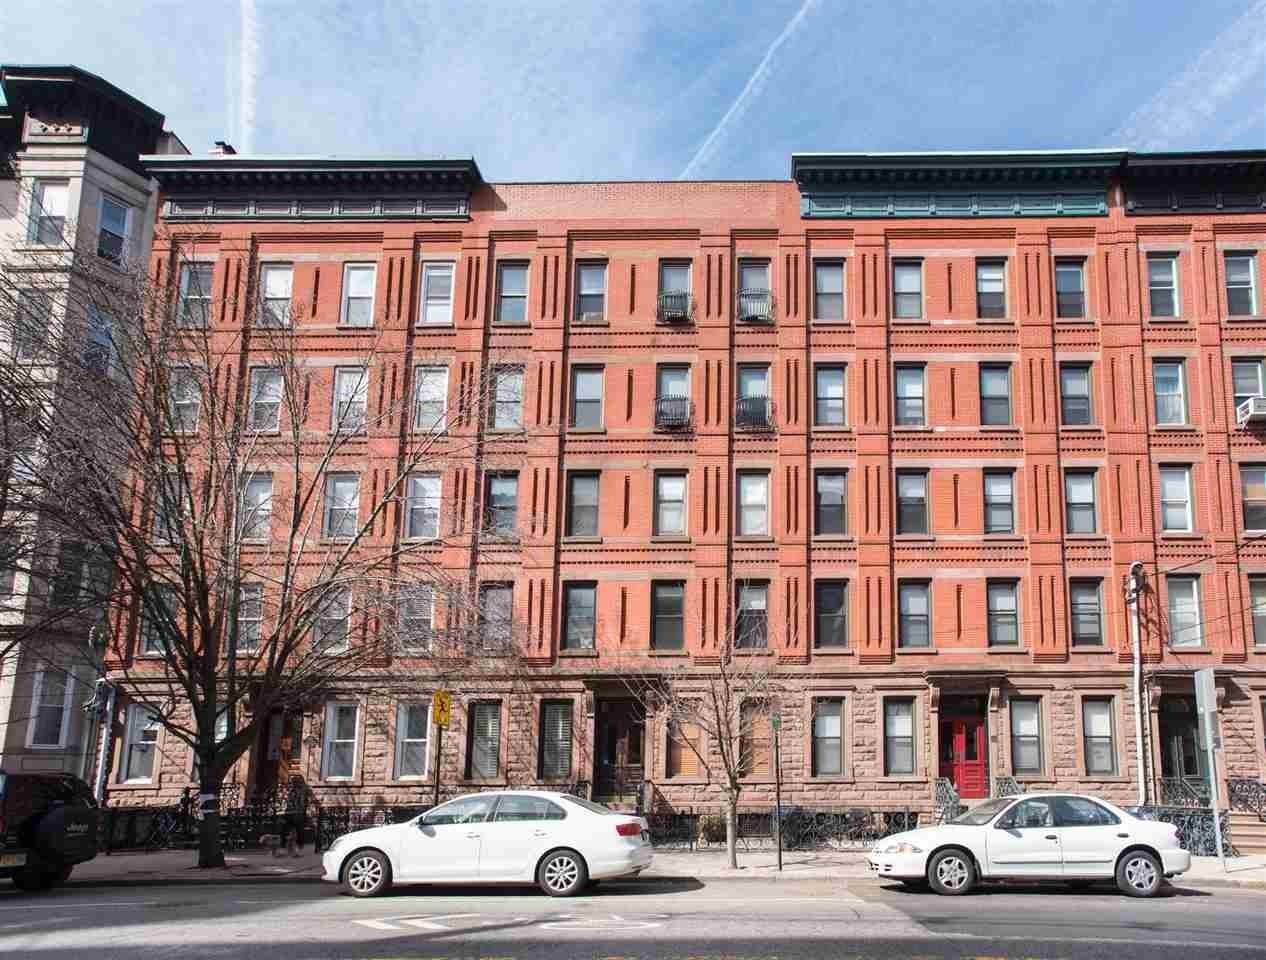 Condominium for Sale at 1114 HUDSON STREET #7 Hoboken, New Jersey, 07030 United States